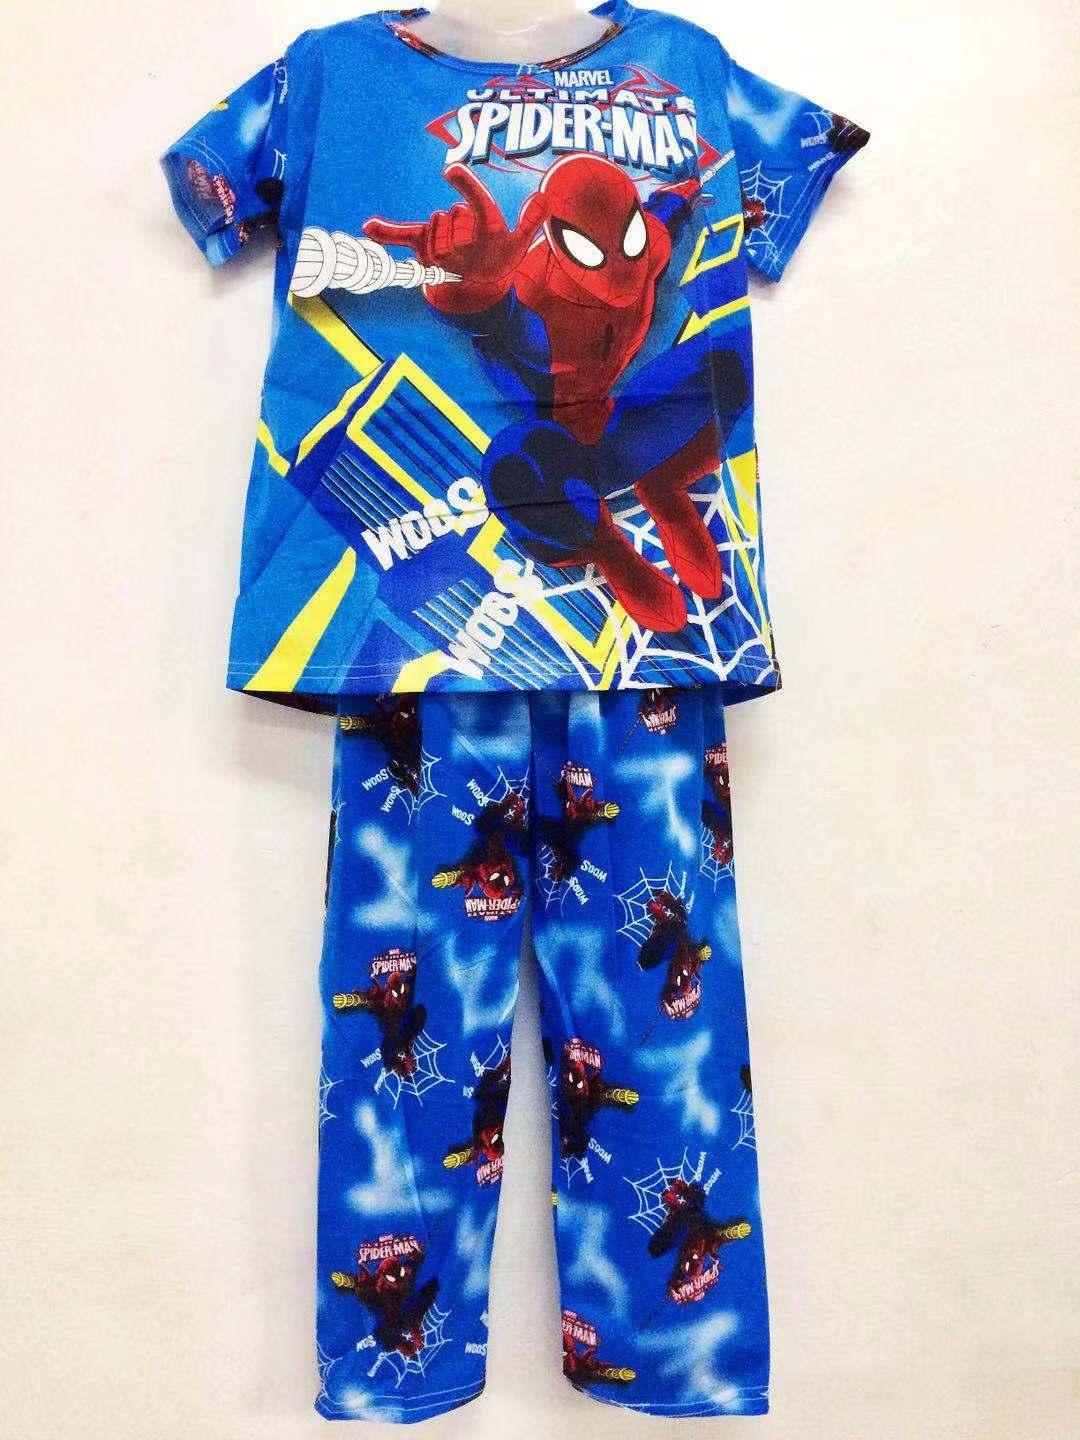 Xuebami Pajama Set Boys Kids Sleepwear Character Spidey By Xuebamiph.